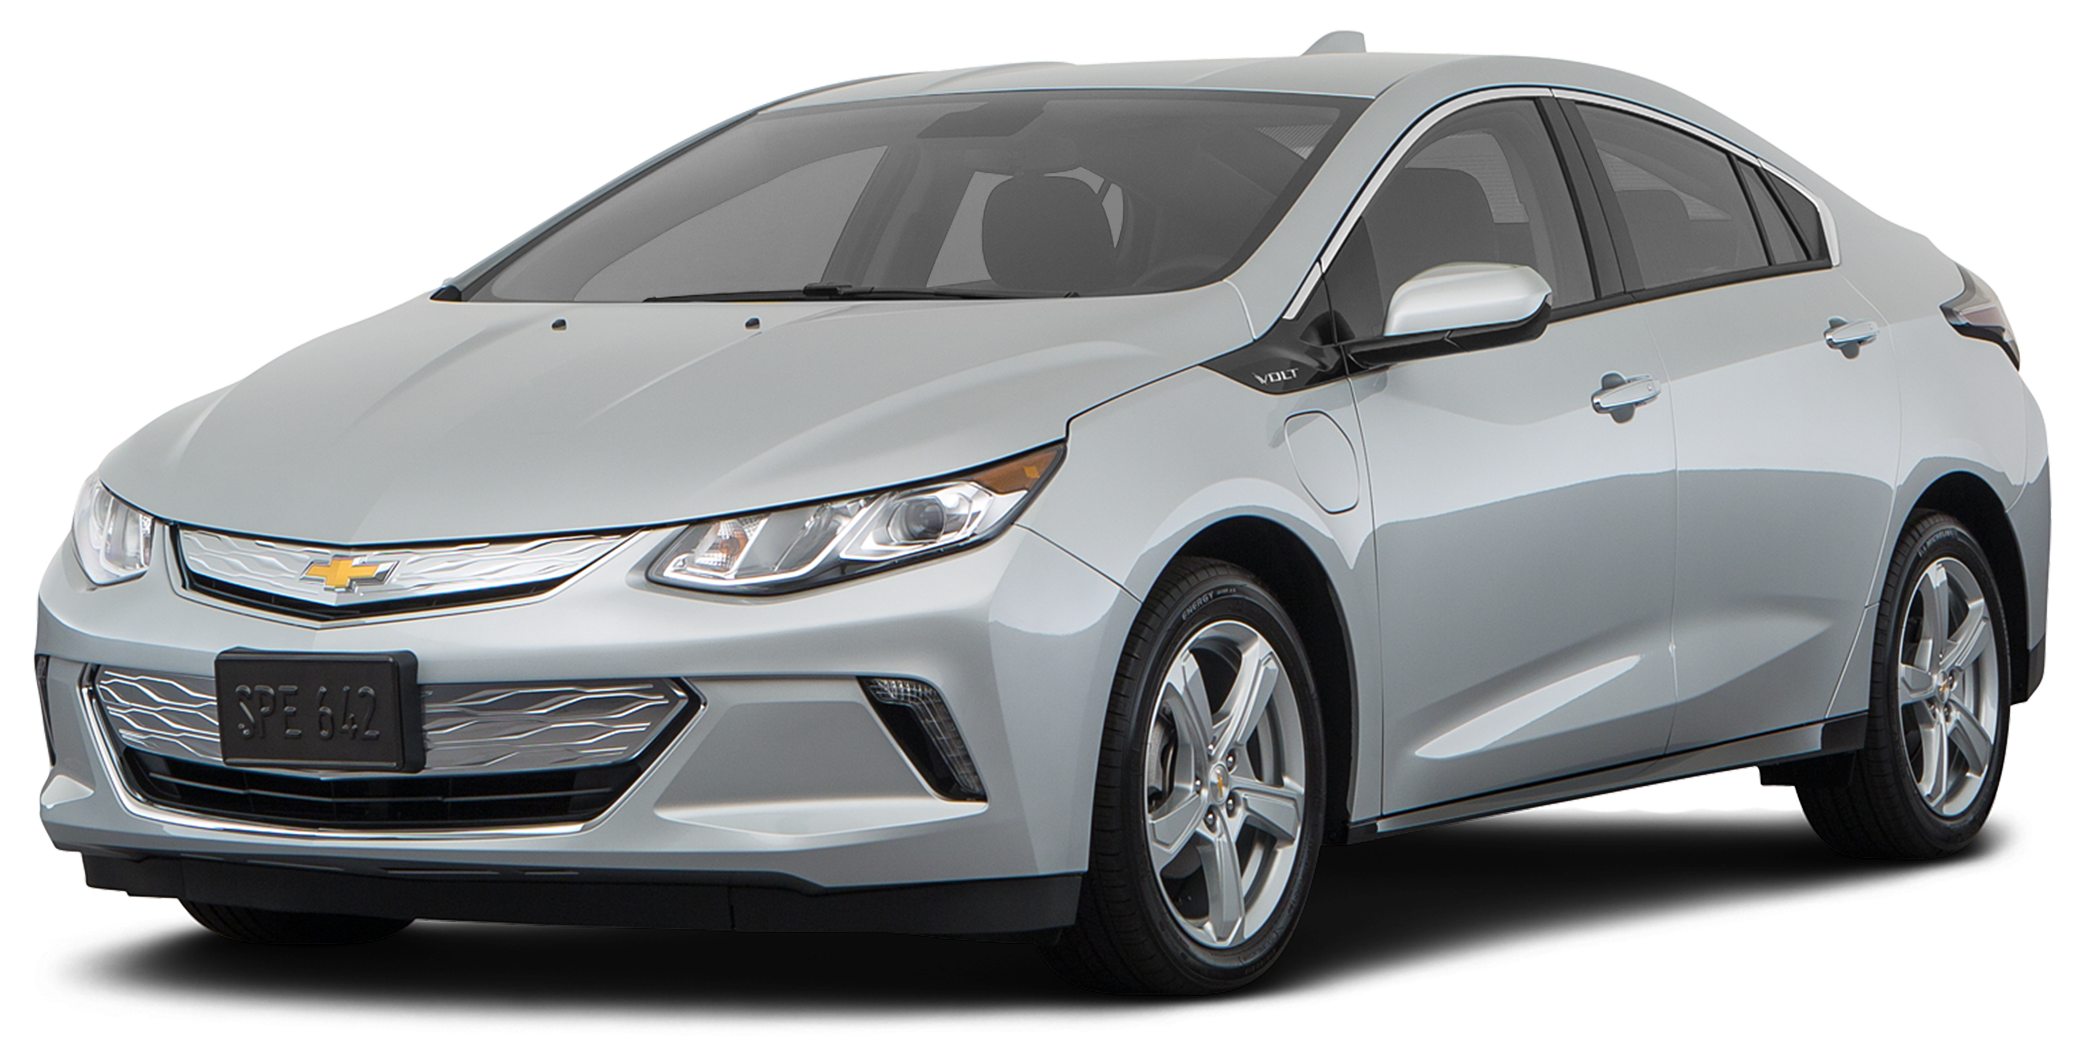 2019 Chevrolet Volt Incentives Specials Offers In Danvers Ma Chevy Gas The Standard Features Of Lt Include Voltec 15l I 4 149hp Hybrid Engine 1 Speed Automatic Transmission Wheel Anti Lock Brakes